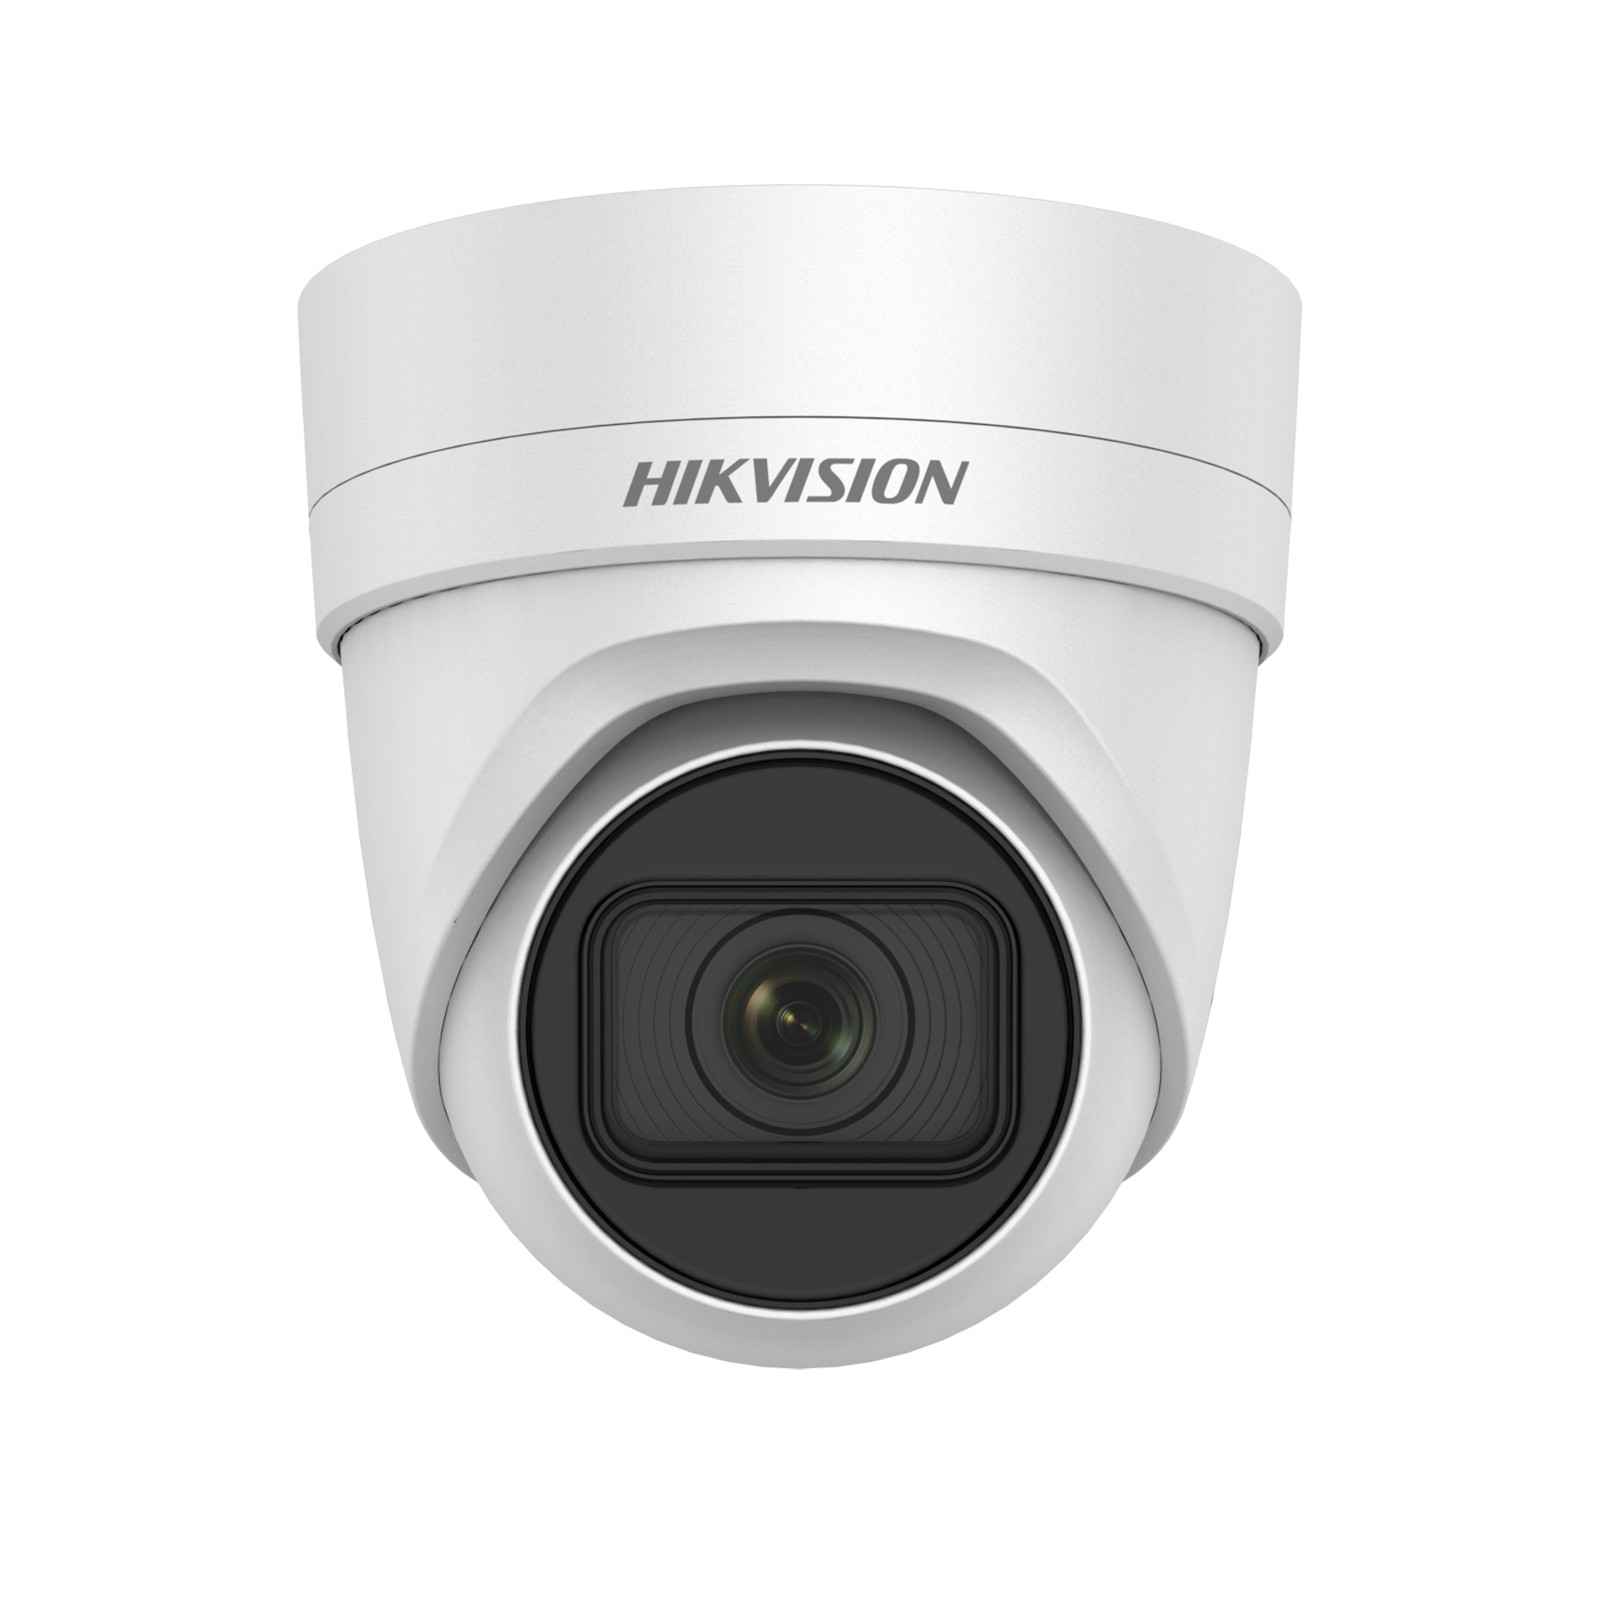 Hikvision DS-2CD2H43G0-IZS 4MP 2.8-12mm Motorized Verifocal Autofocus SD-Card 30M IR POE IP67 IK10 Vandal Turret Dome Network IP Security Camera